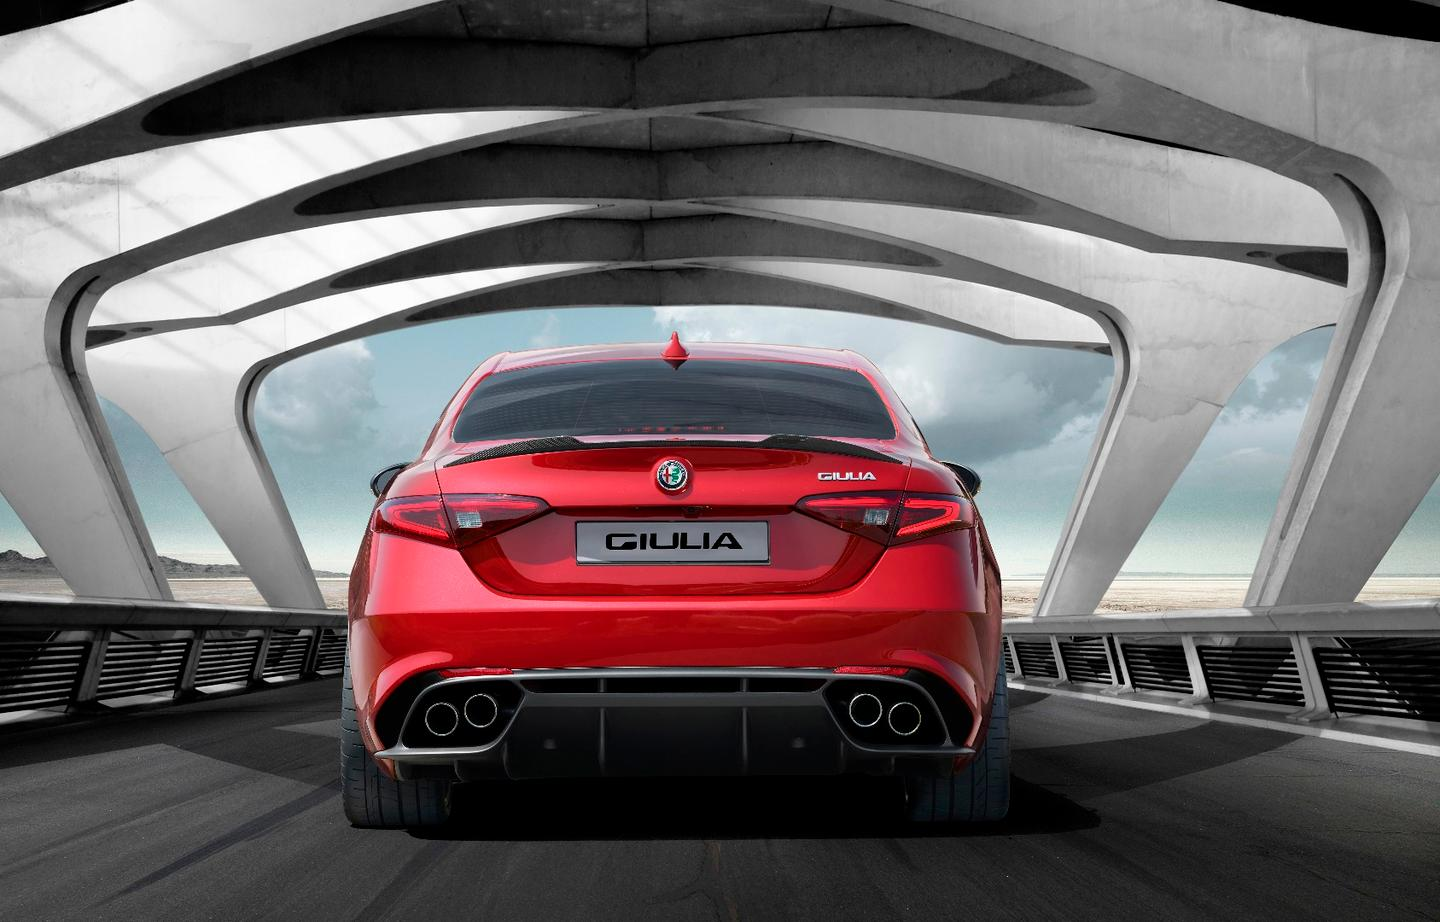 The new Giulia will go into battle with the BMW 3 Series